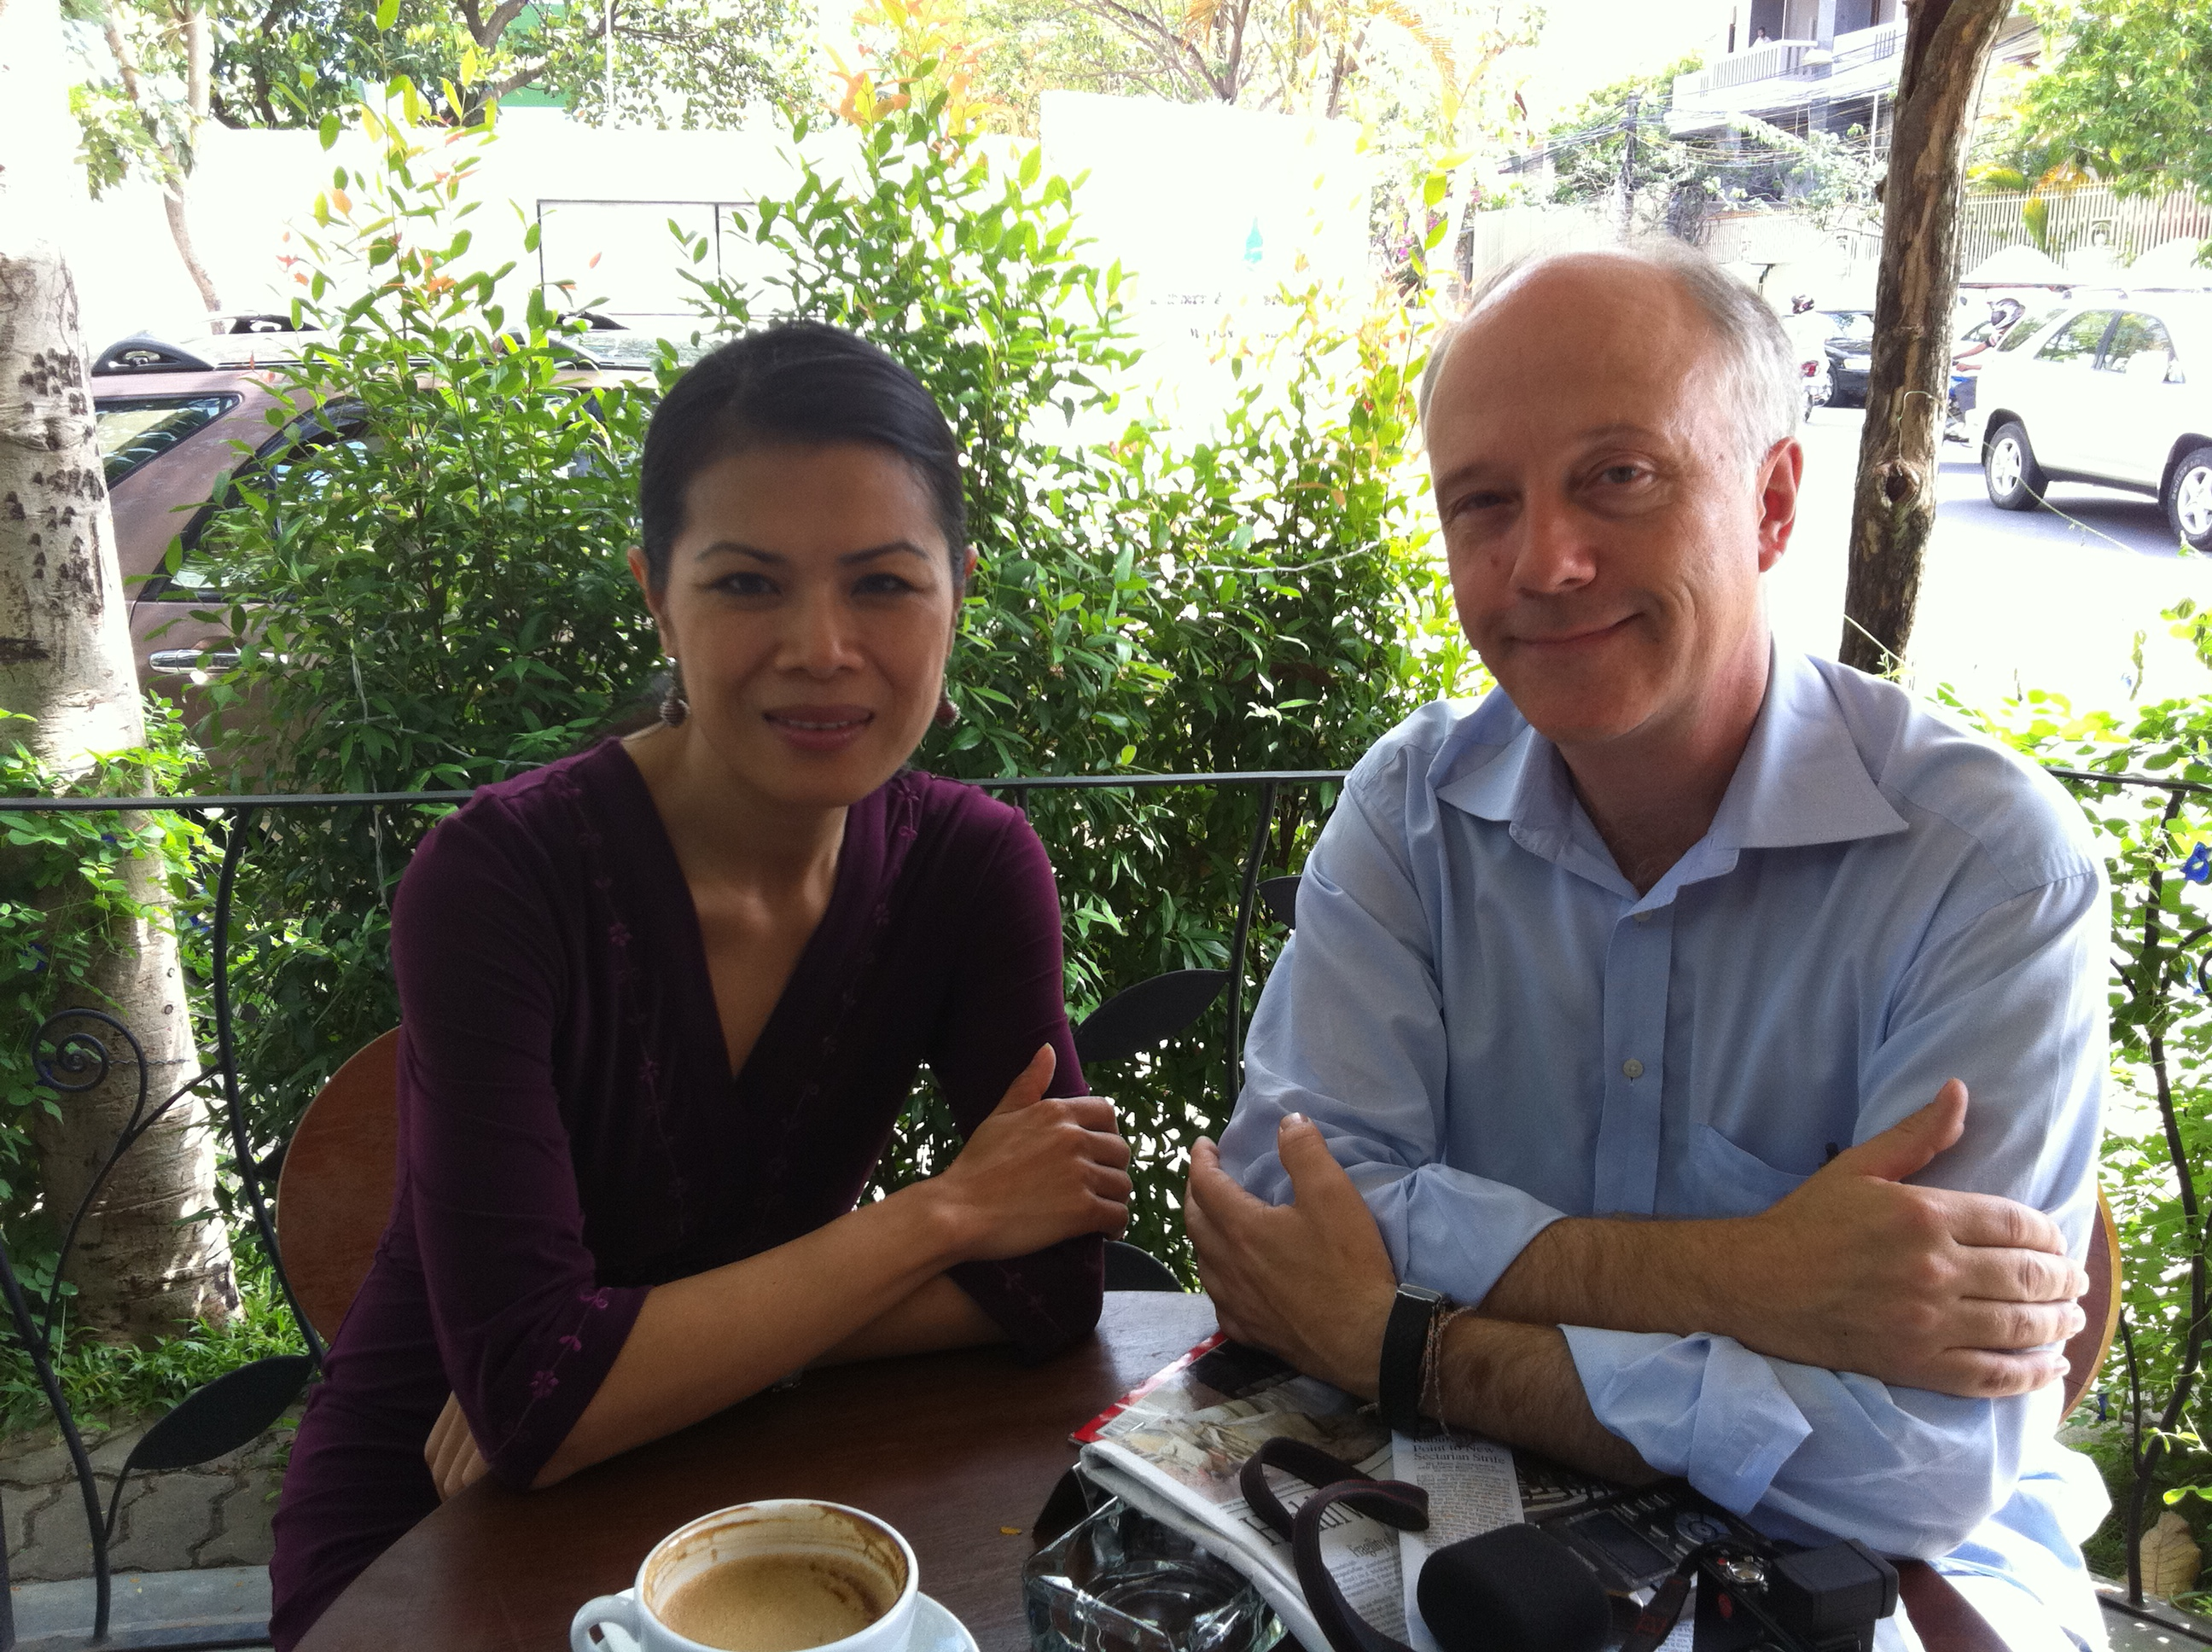 Theary Seng with Nils Horner of National Swedish Radio, 8 Dec. 2011